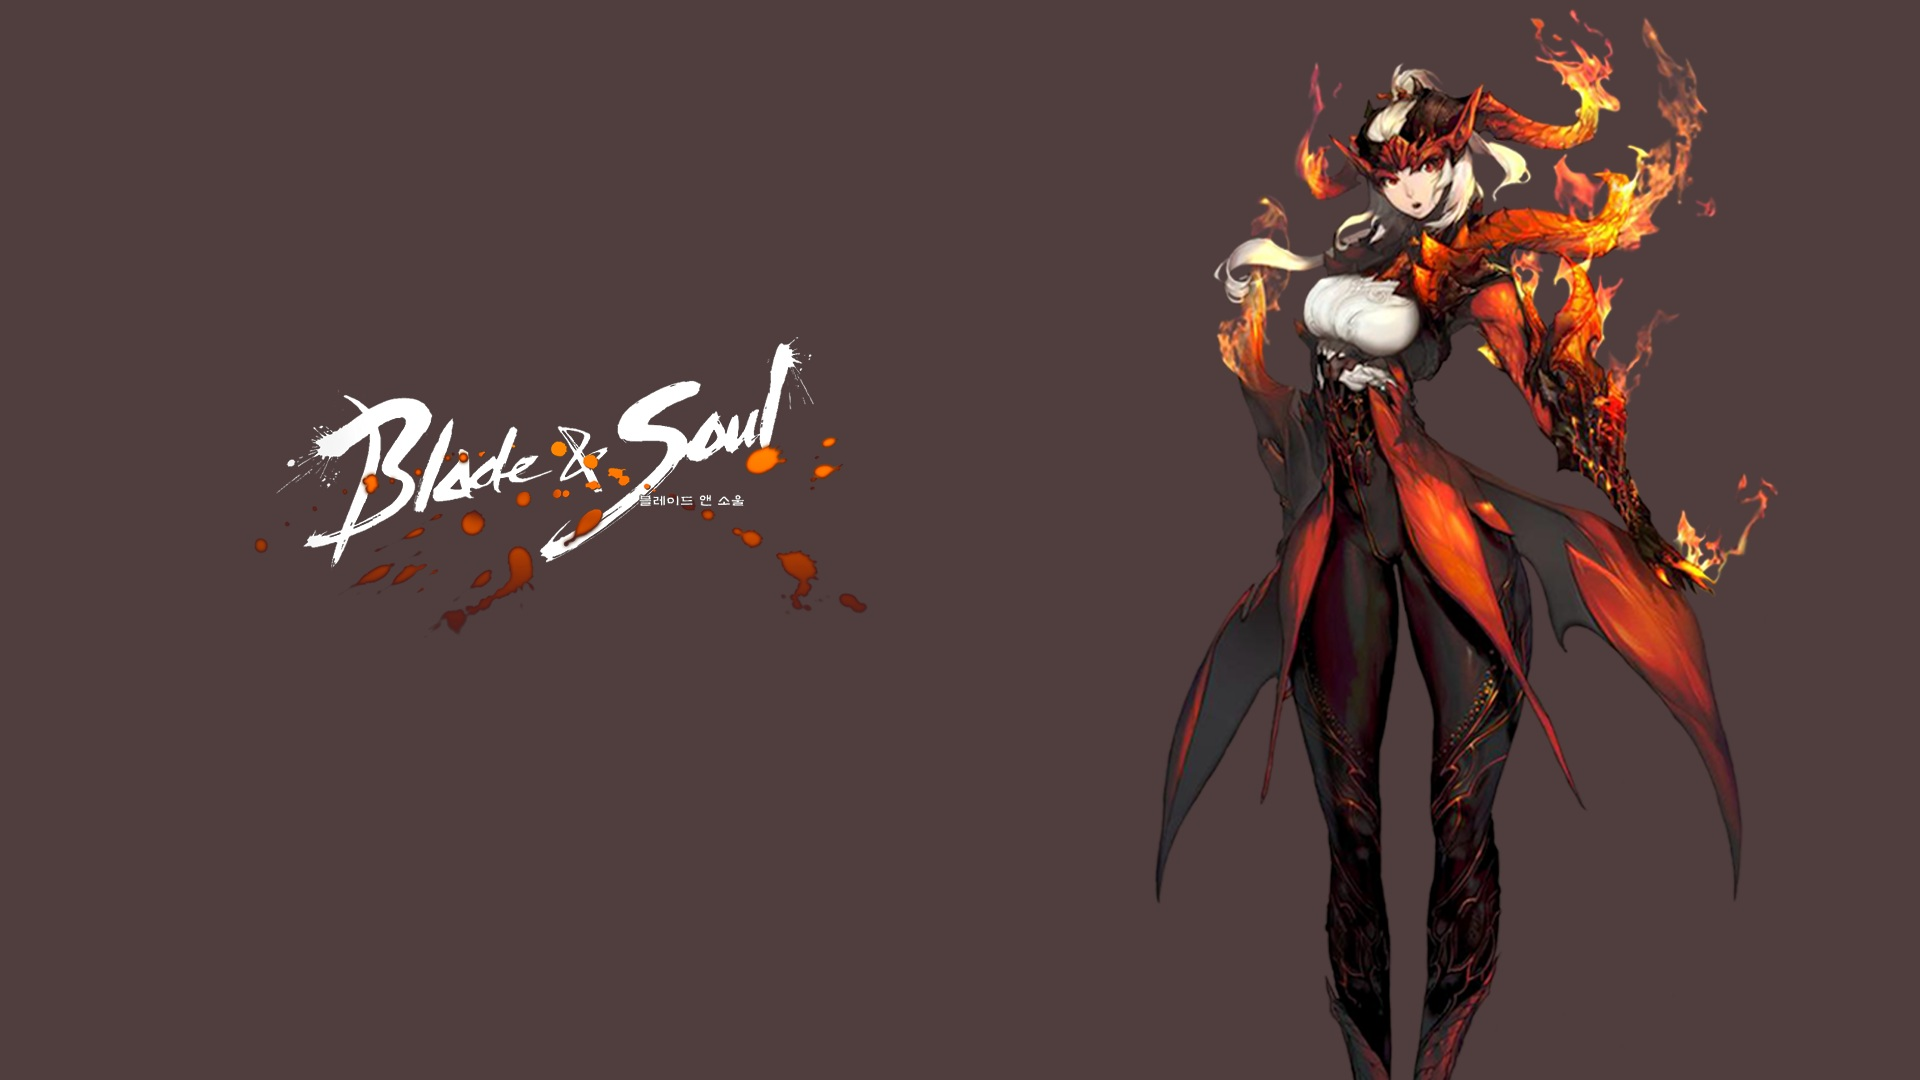 Blade And Soul Wallpaper HD 13244 Wallpaper Game Wallpapers HD 1920x1080